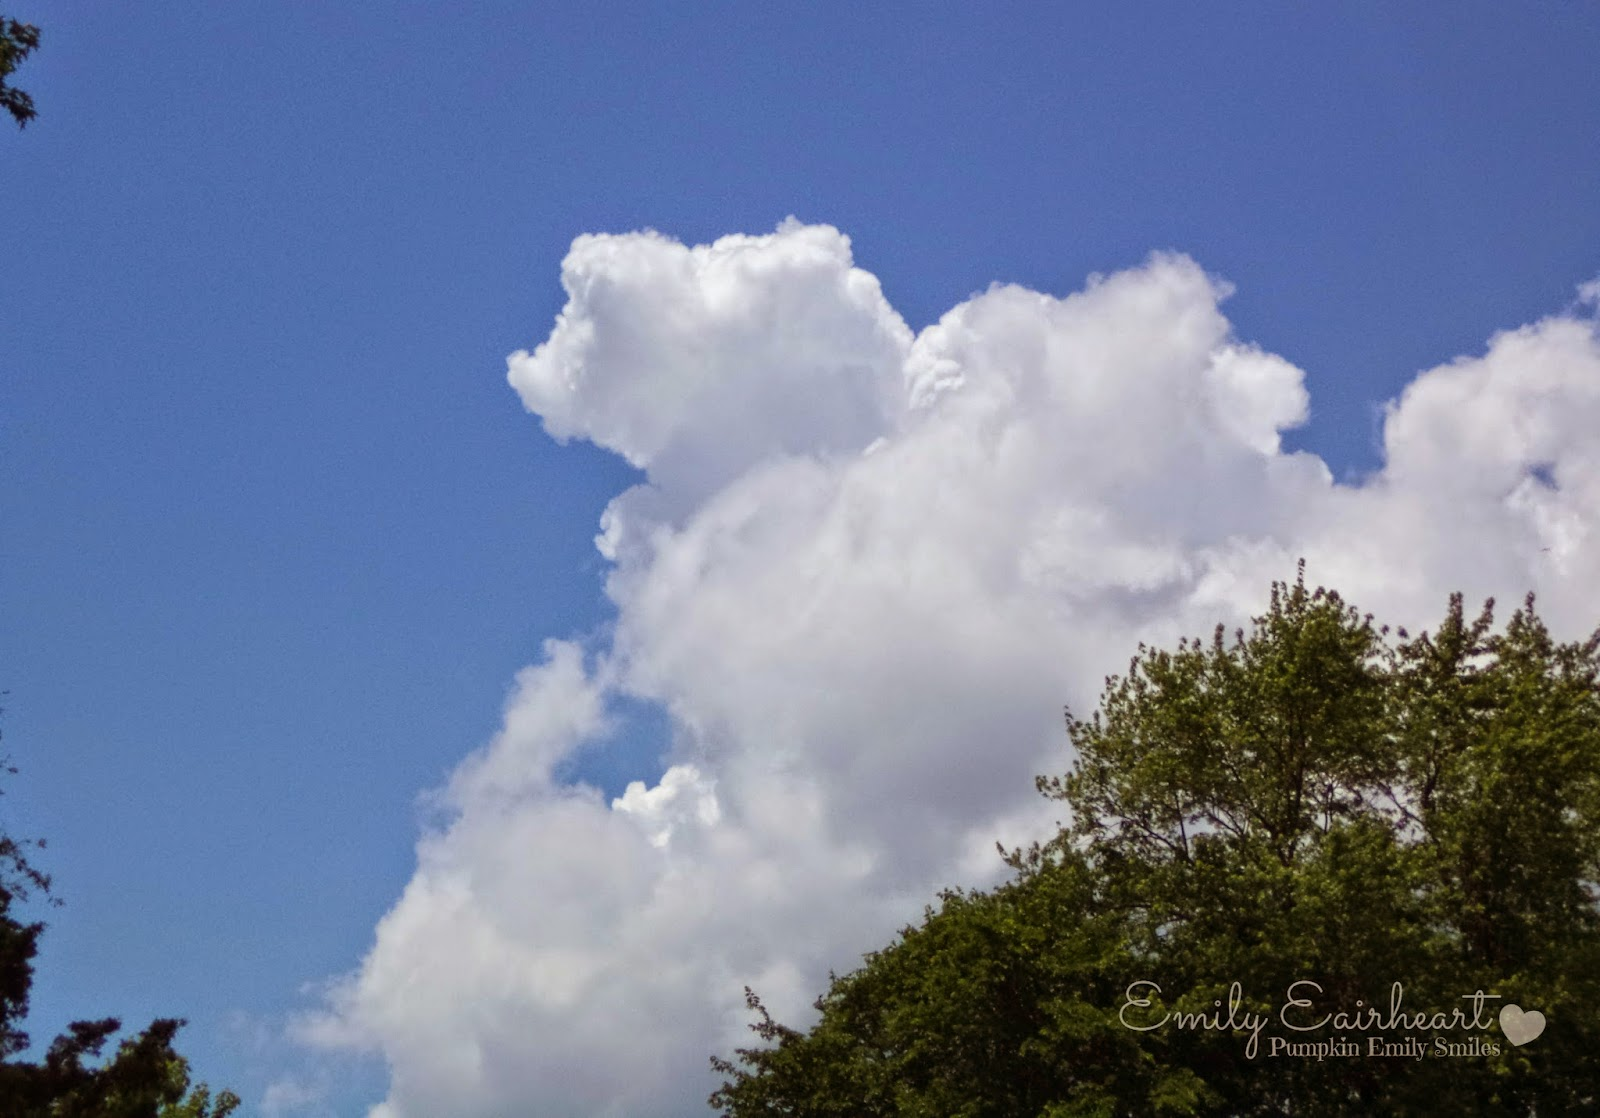 A cloud shape that looks like an animal.